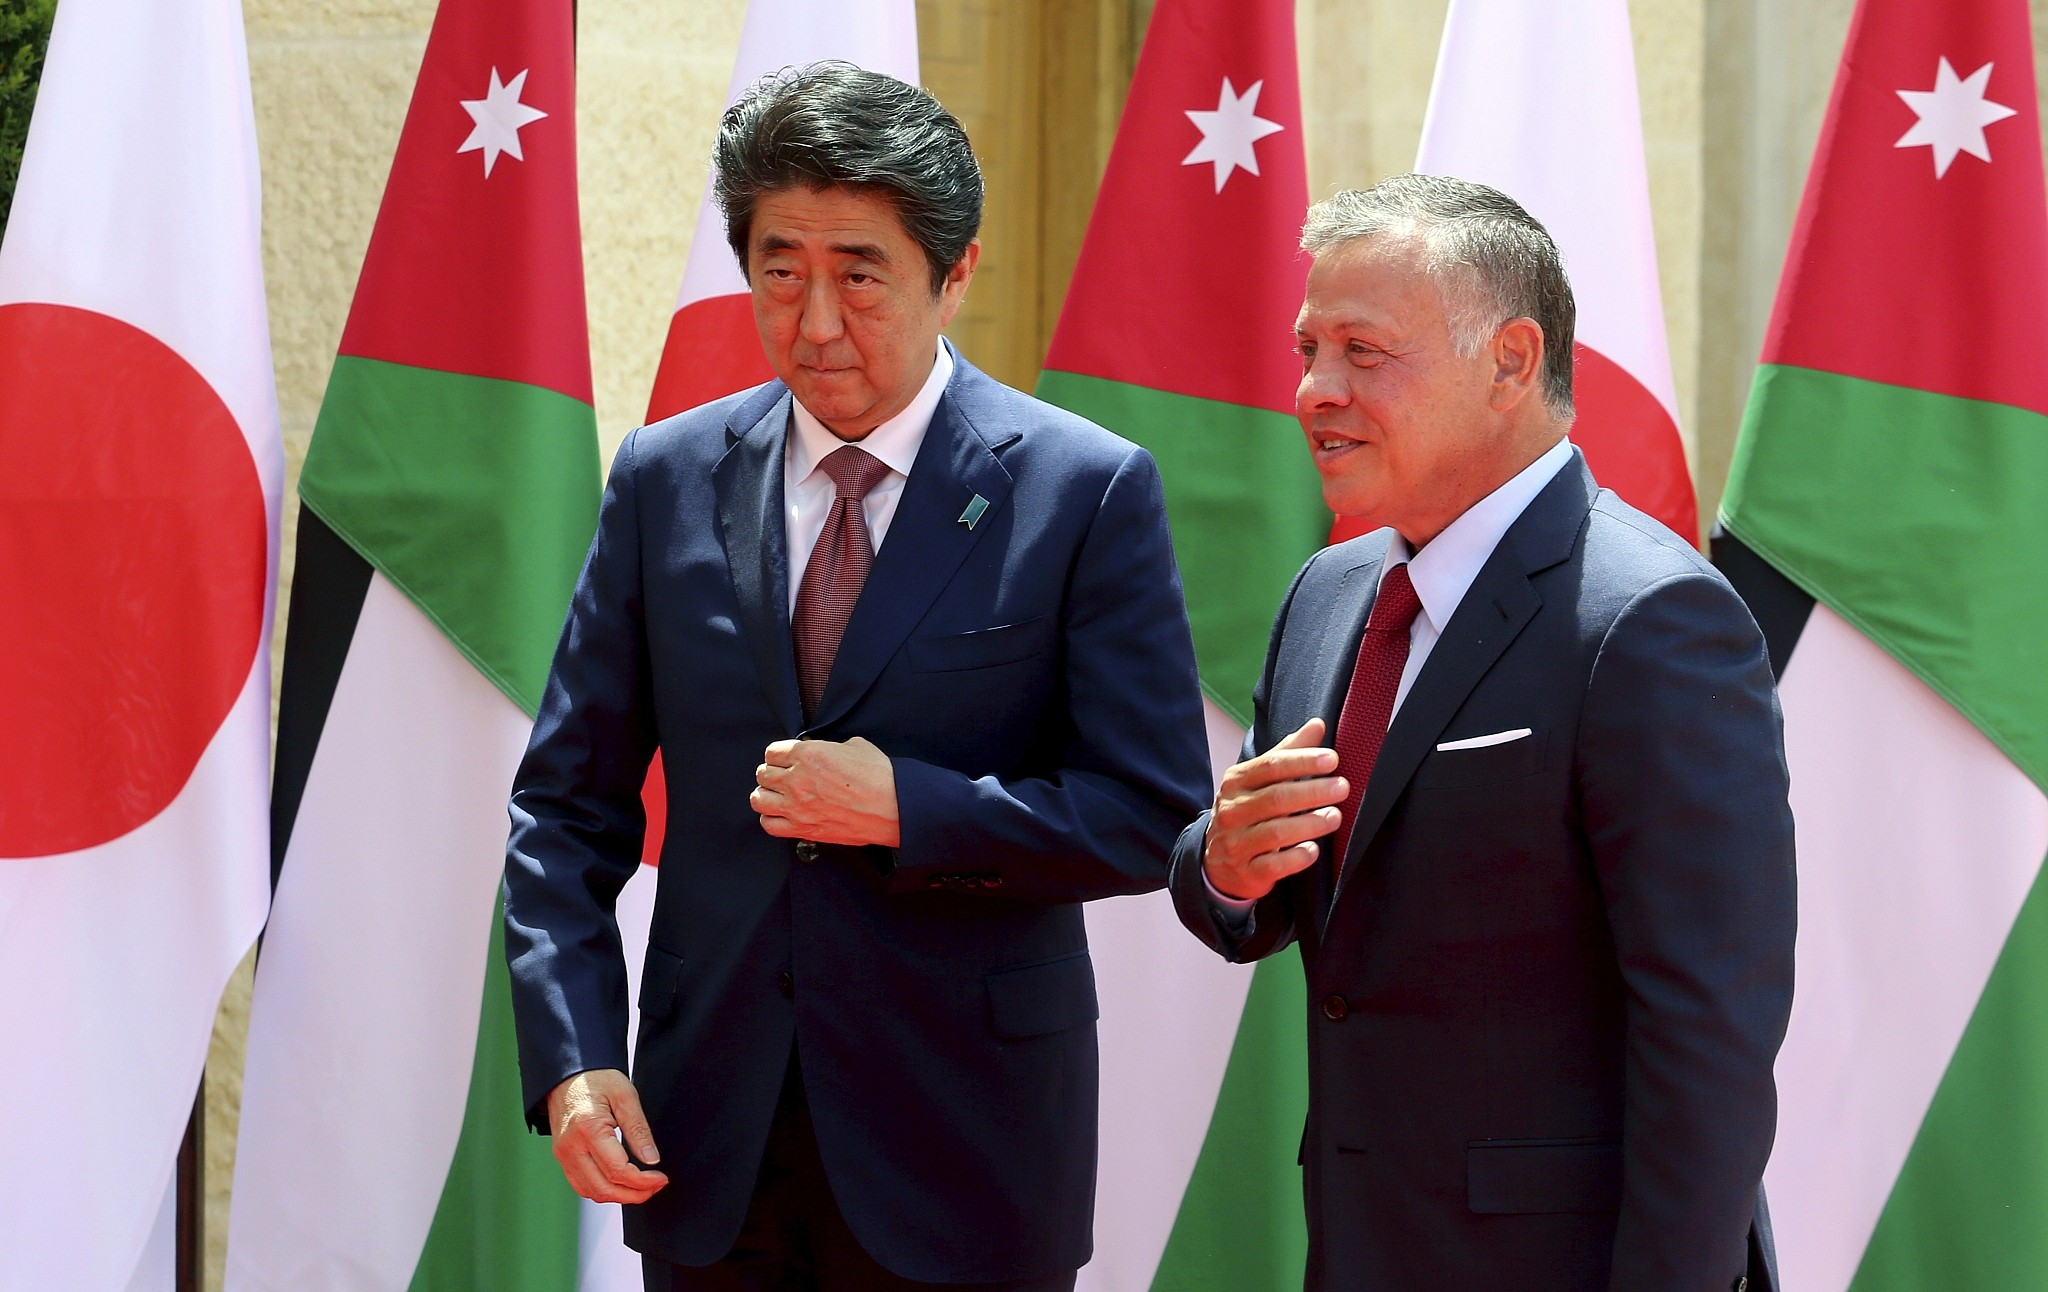 Japanese PM pledges not to move Israel embassy,reports from Palestinian official media